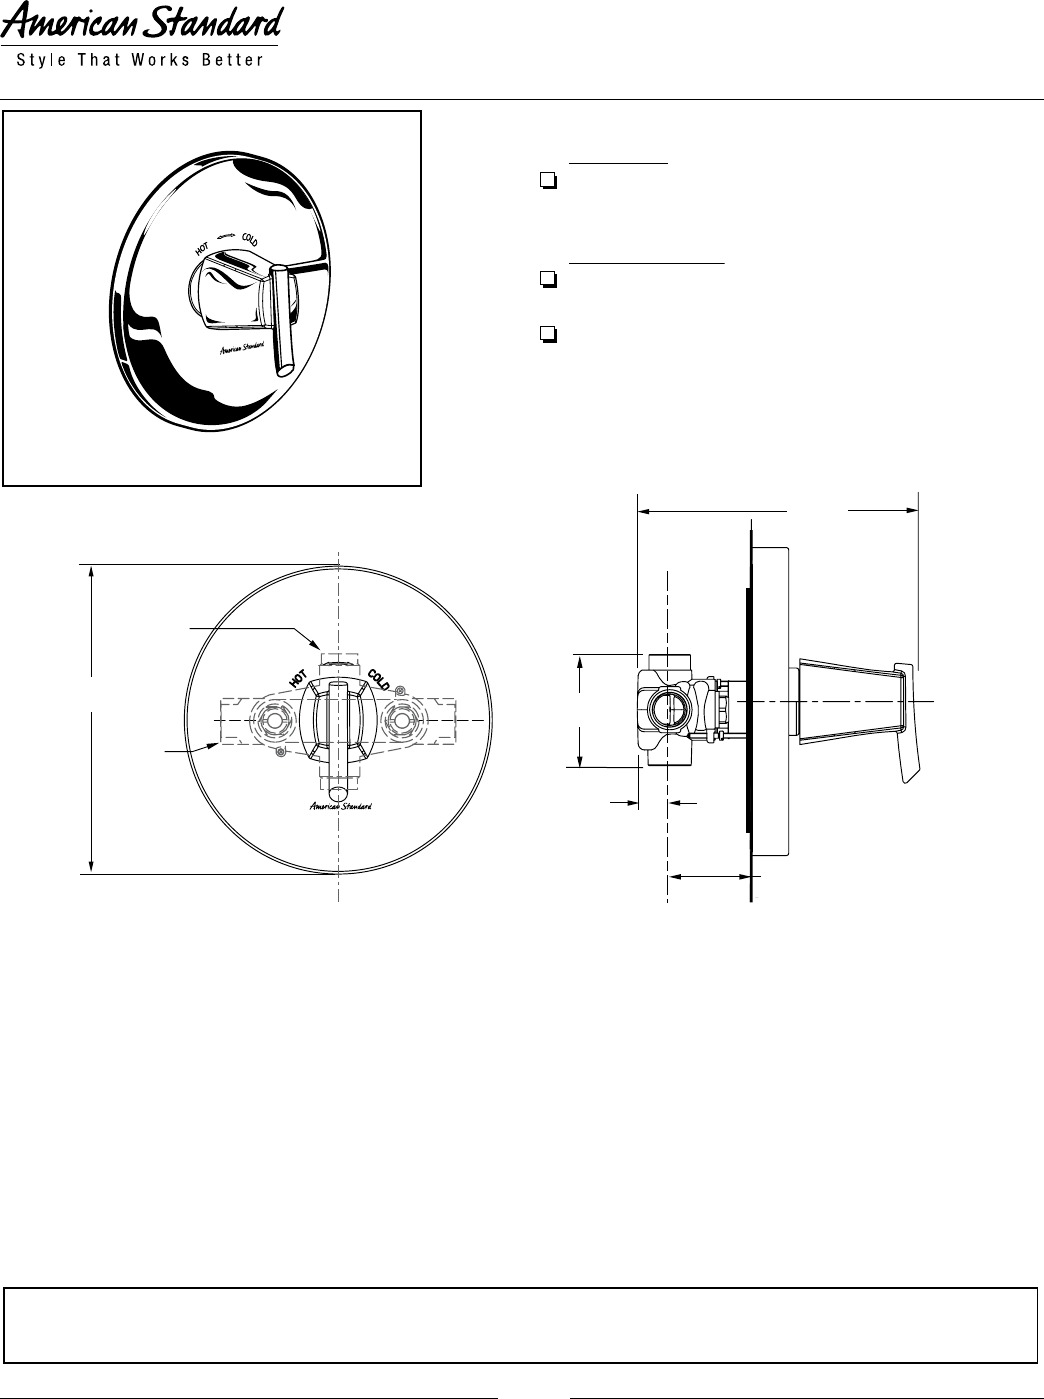 American Standard Thermostat T010 730 User Guide